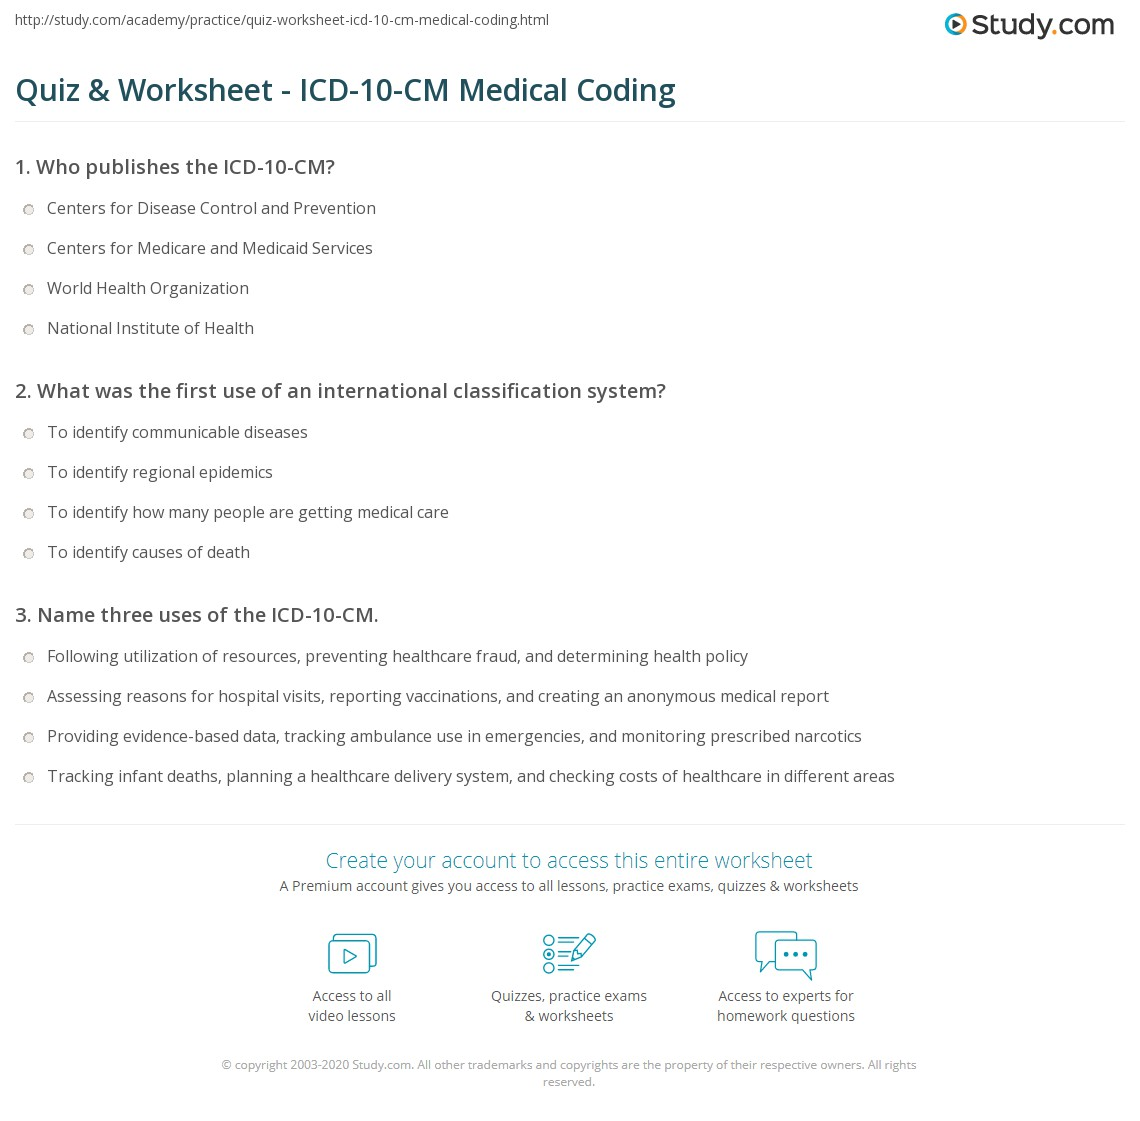 Worksheets Medical Coding Practice Worksheets quiz worksheet icd 10 cm medical coding study com print what is the system basics uses worksheet